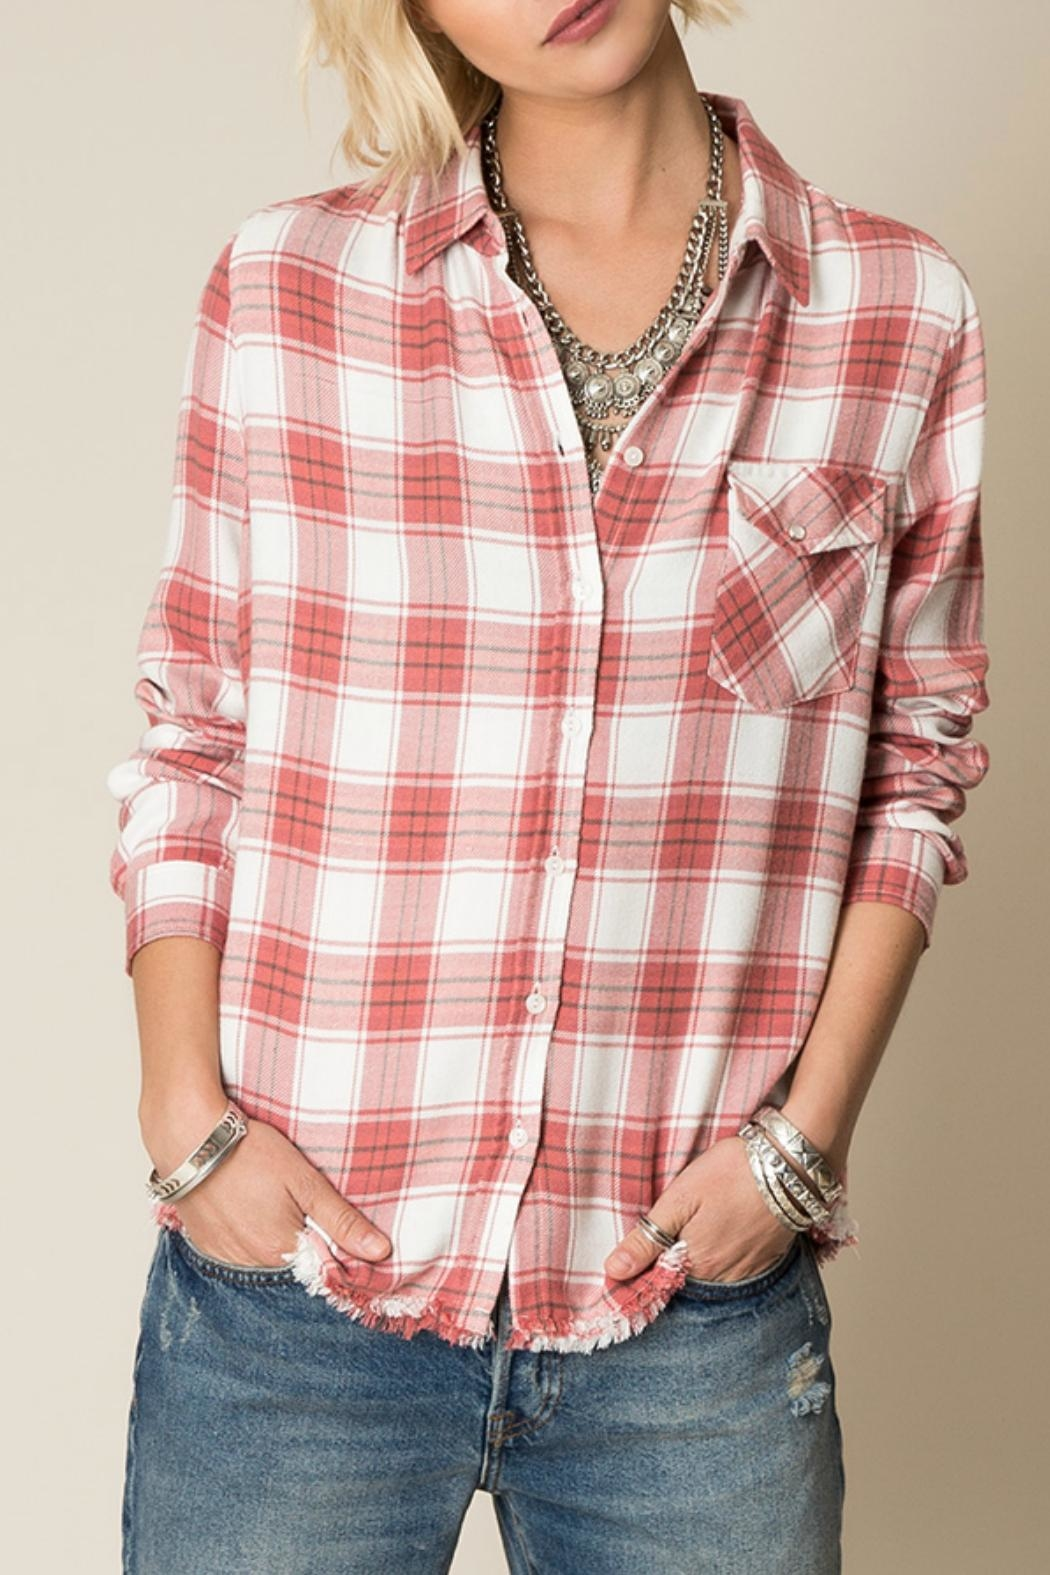 White Crow Frayed Hem Flannel Top - Main Image